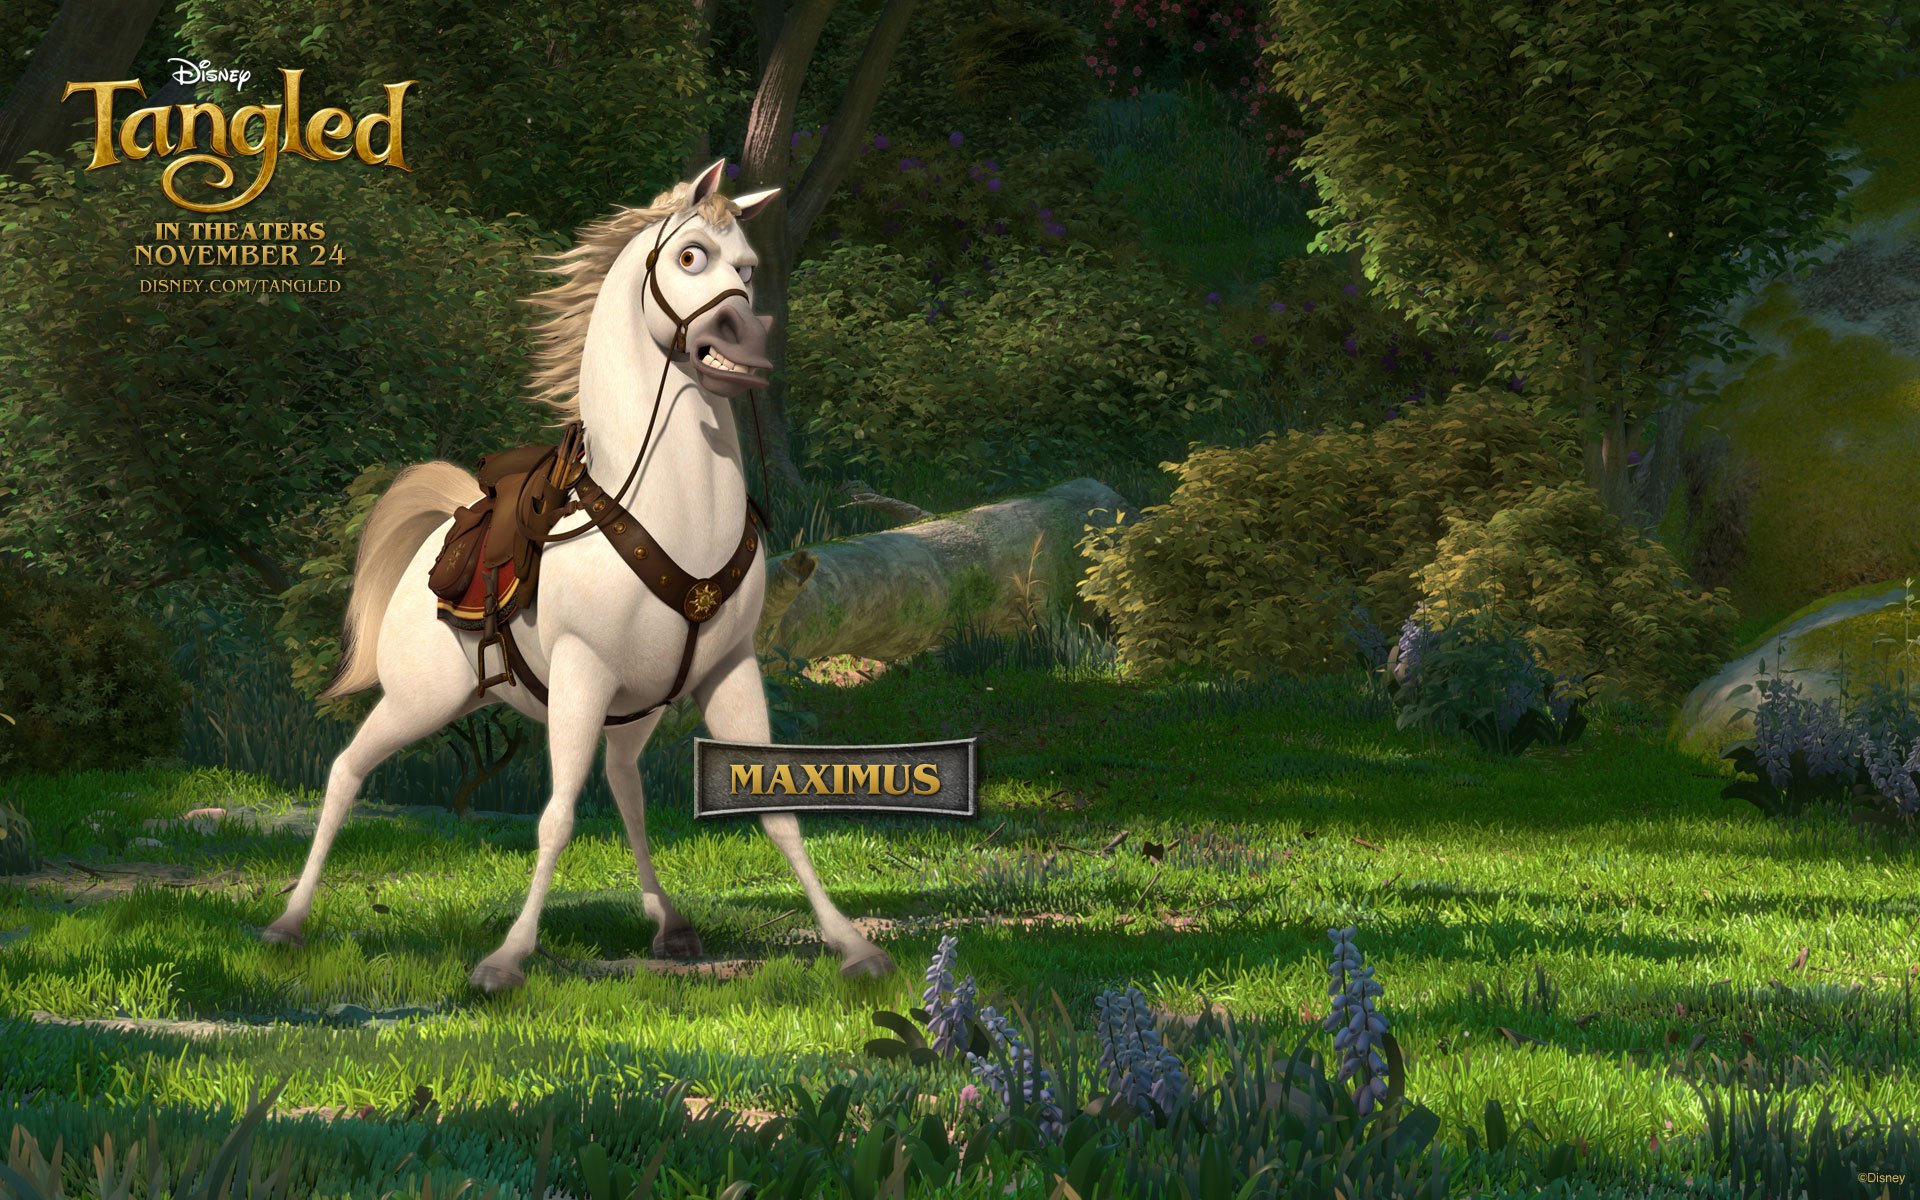 Maximus the Horse from Disney's Tangled Desktop Wallpaper